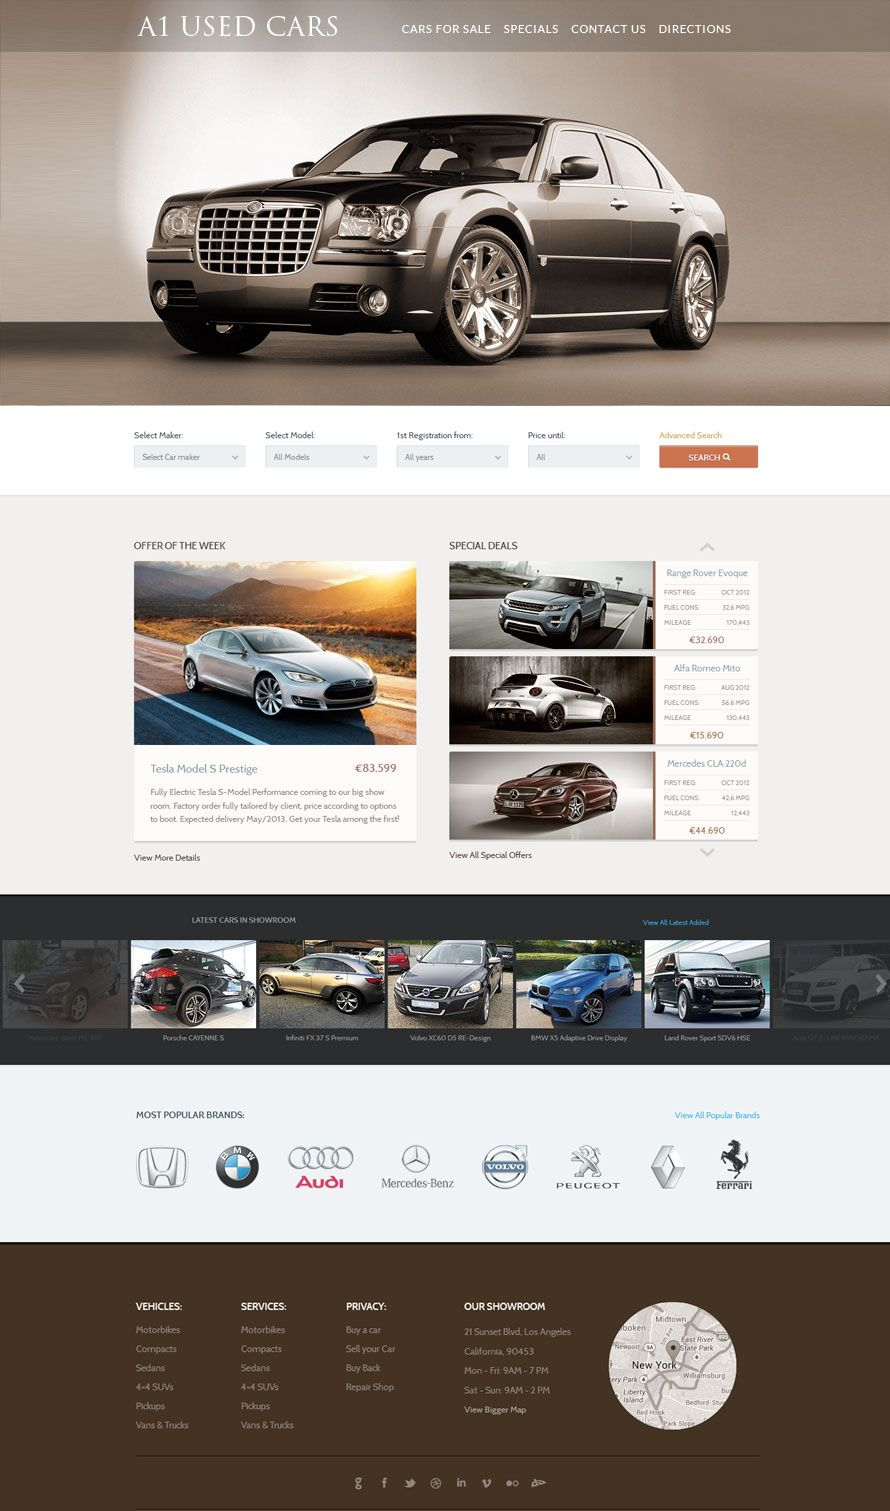 Used Car Dealer Website Design Design Design Web Design